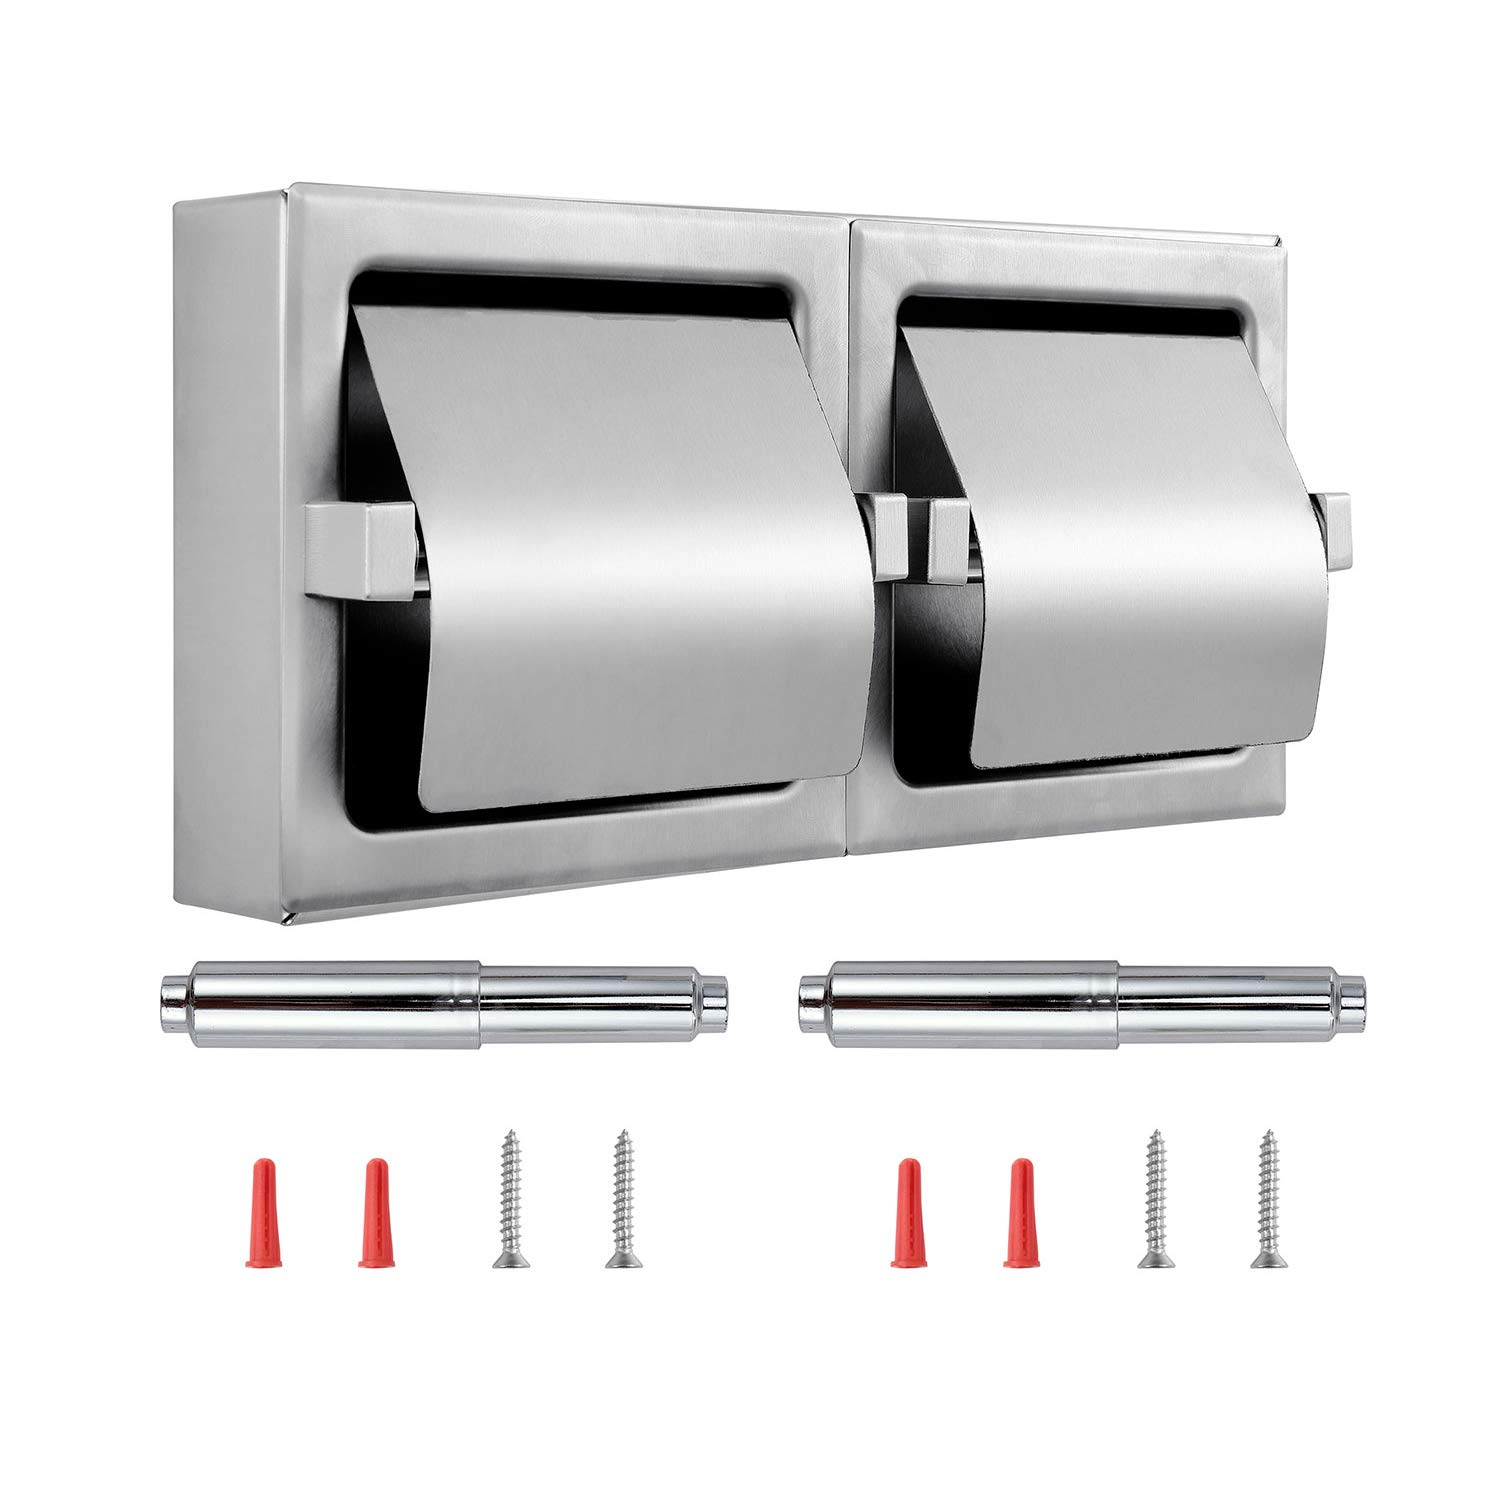 Dependable Direct Pack of 9 - Horizontal Two Roll Hooded Toilet Paper Holder - Stainless Steel - Satin Finish - Surface Mount by Dependable Direct (Image #1)